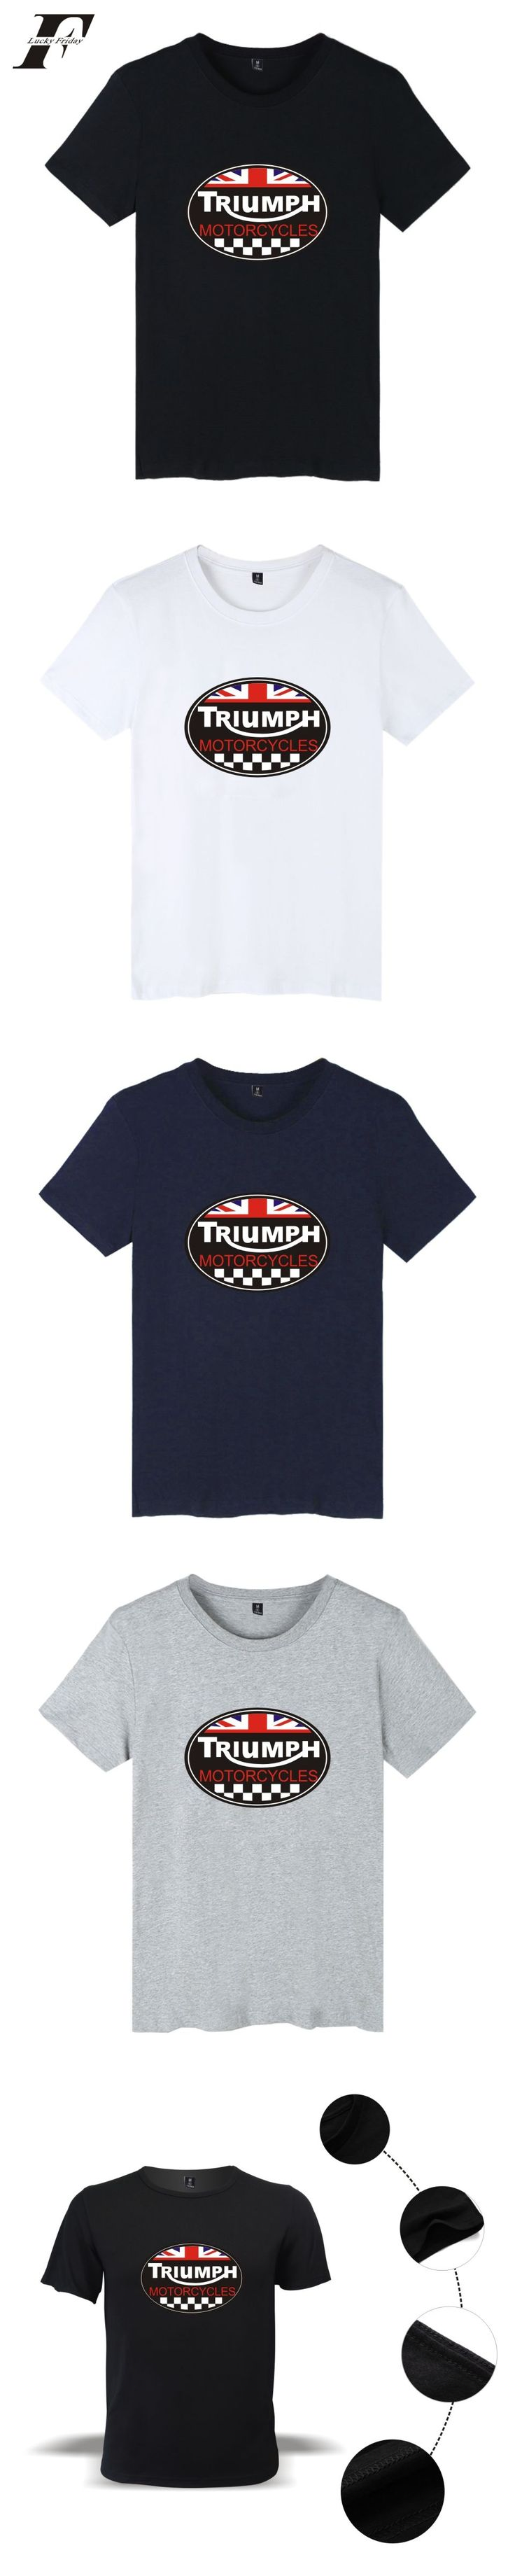 LUCKYFRIDAYF 2017 TRIUMPH MOTORCYCLE New Style Casual Cool Men/Women Short Sleeve T Shirt Summer Clothes With Plus Size 4XL